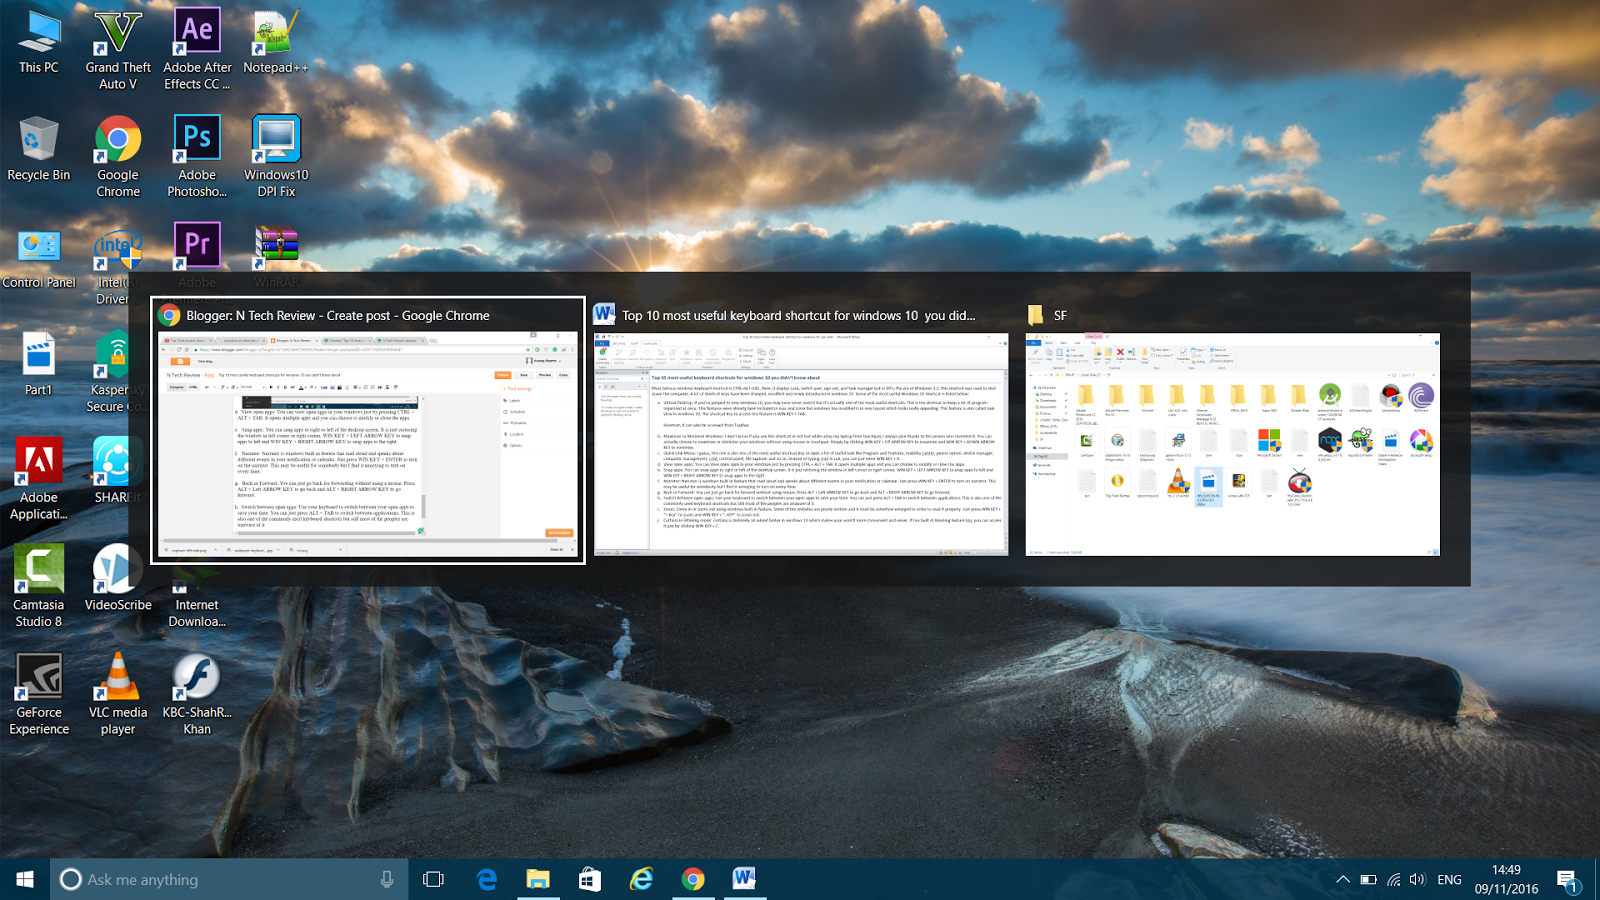 Top 10 most useful keyboard shortcuts for windows 10 you